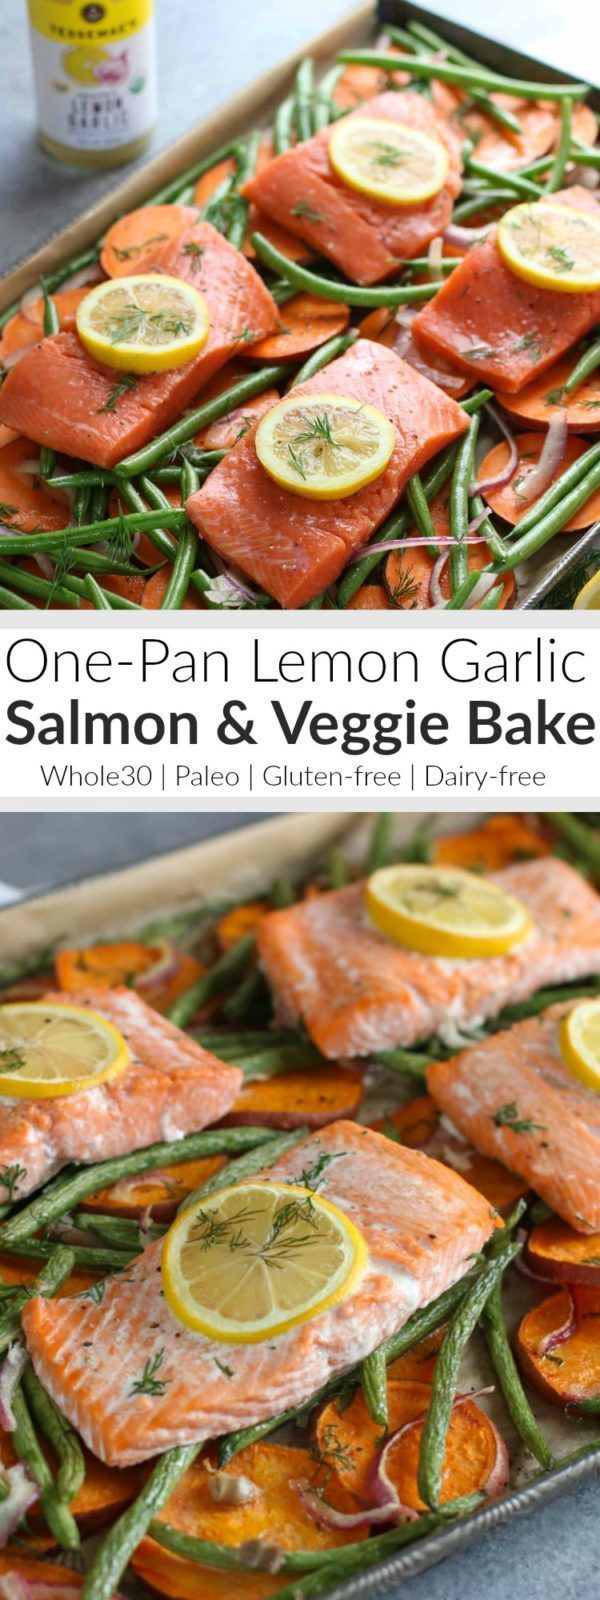 One Pan Salmon & Veggie Bake | Whole30 salmon recipe | Gluten-free dinner | Dairy-free dinner | Paleo dinner | healthy dinner recipe | one pan dinner recipes || The Real Food Dietitians #onepanmeal #Whole30dinner #salmonrecipe